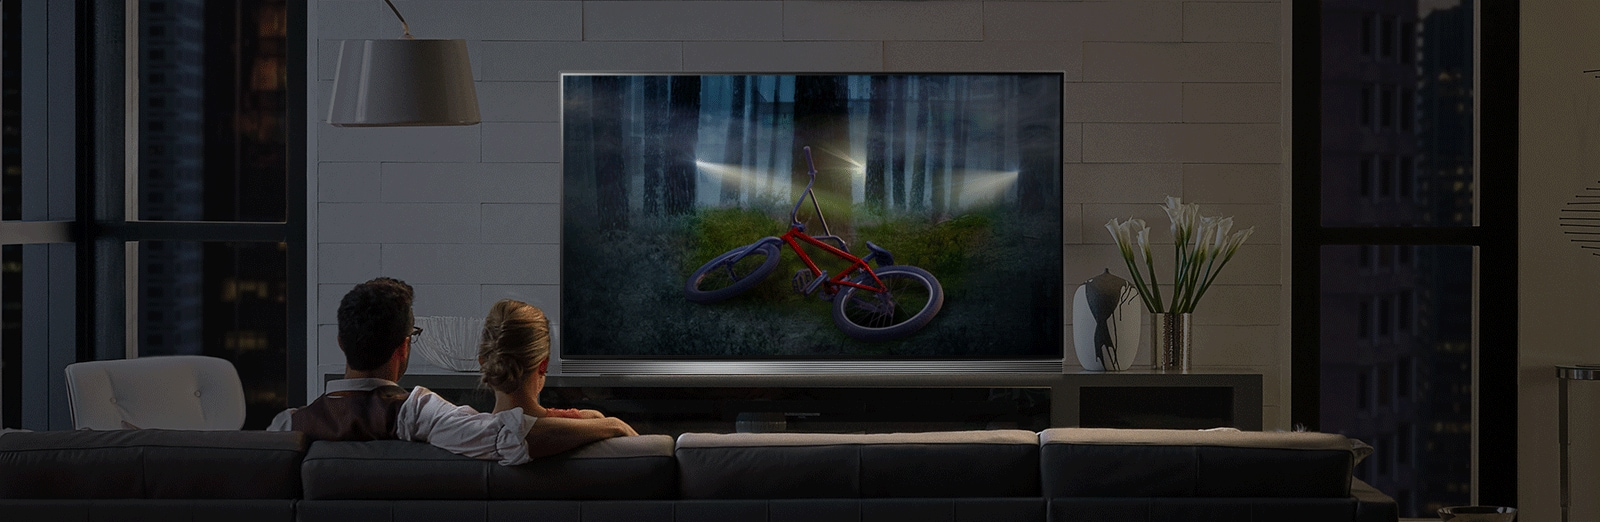 OLED TV Discover LG s Curved & Flat OLED TVs